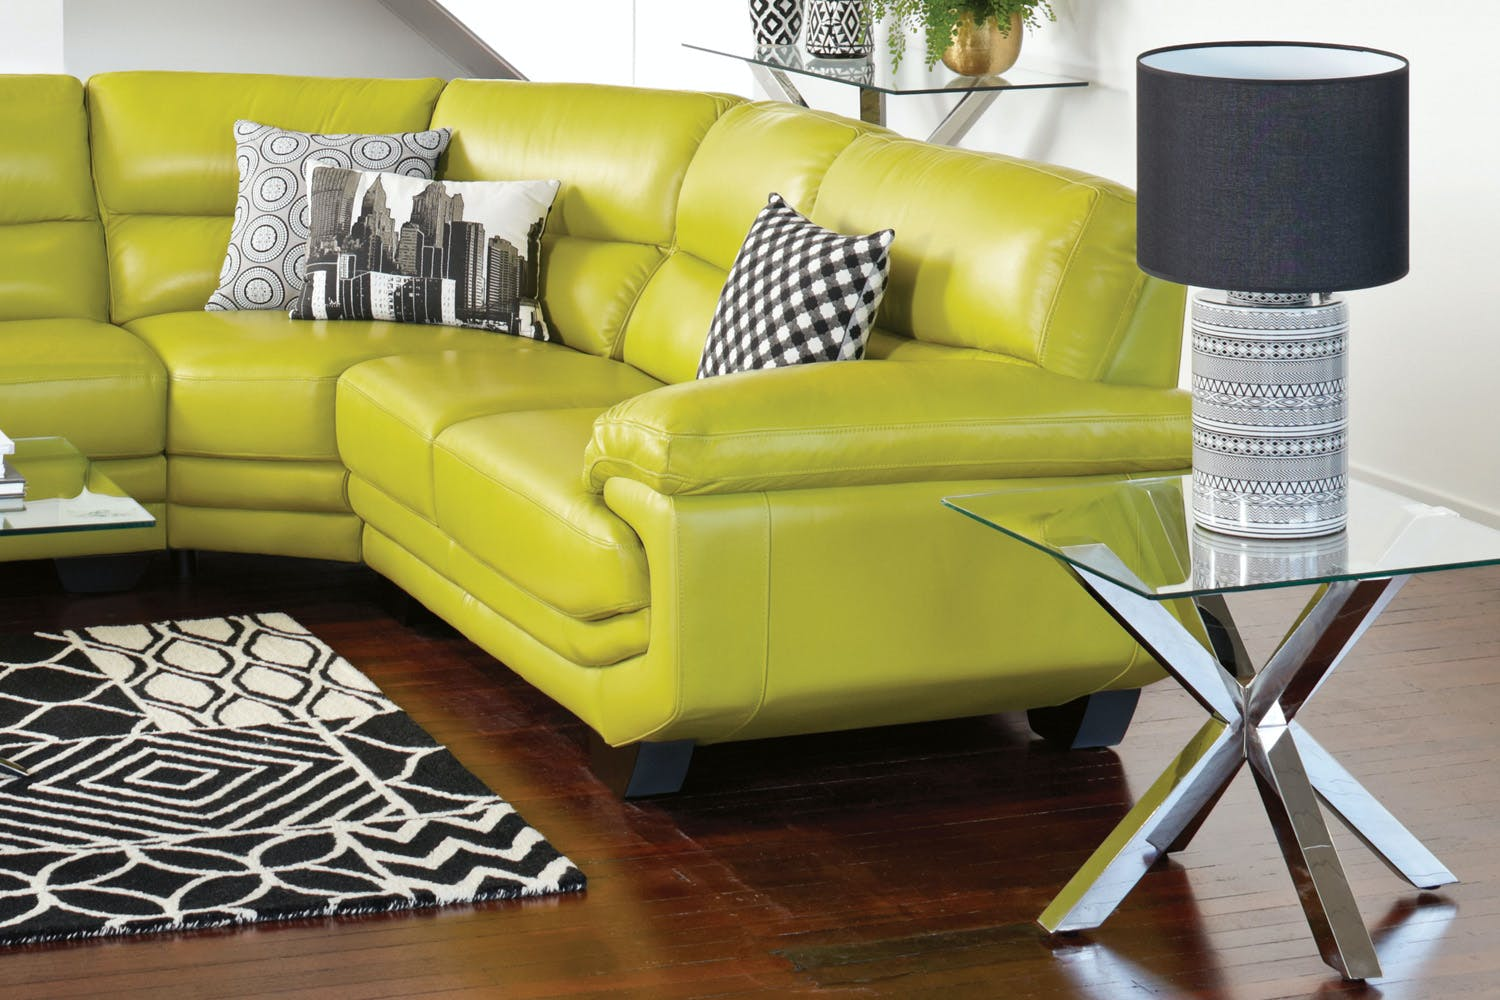 Astrid lamp table by debonaire furniture harvey norman for Lamp table harvey norman